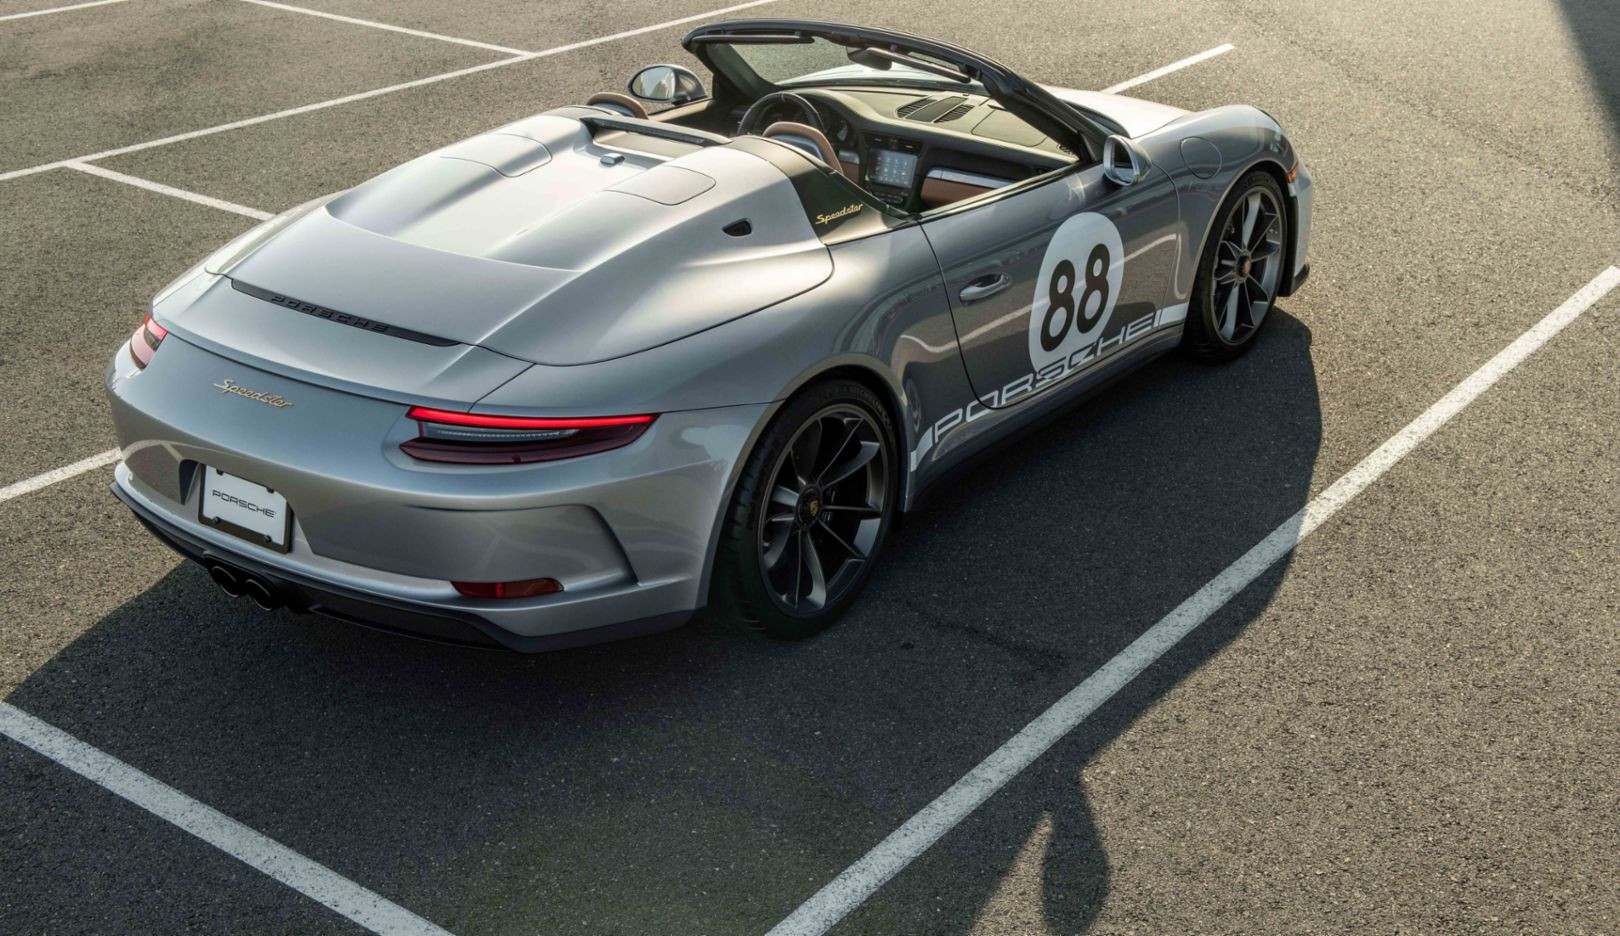 Porsche and RM Sotheby's to auction last 911 (991) for charitable COVID-19 fundraiser - Image 4